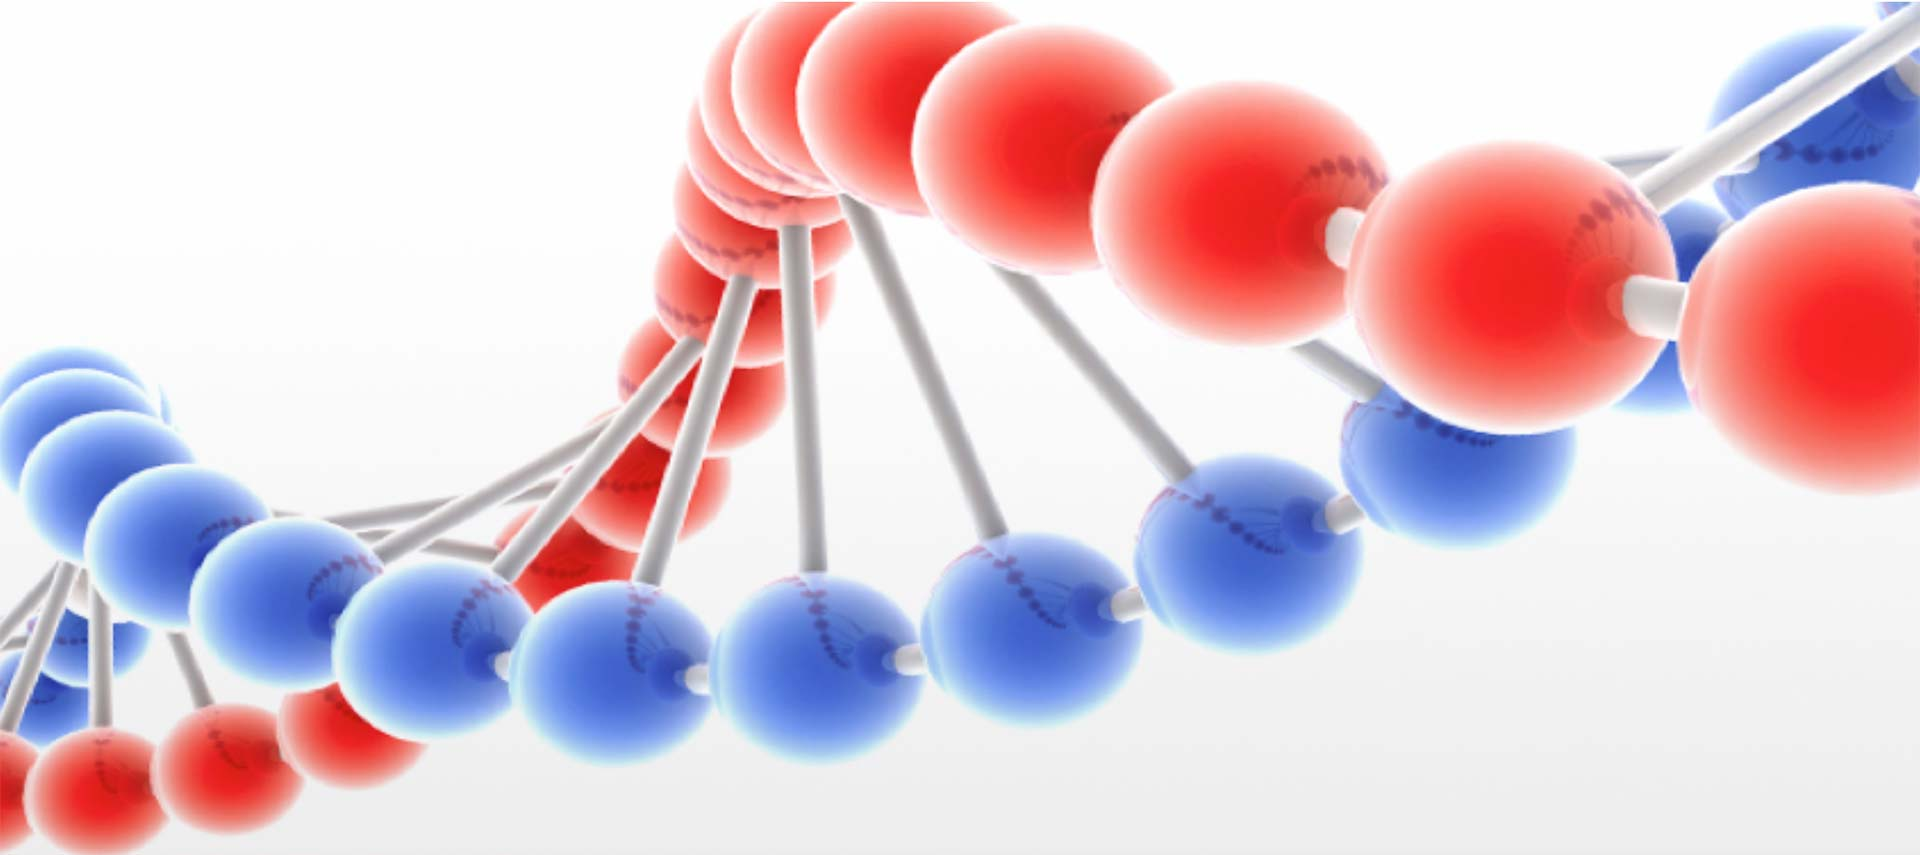 red and blue DNA string